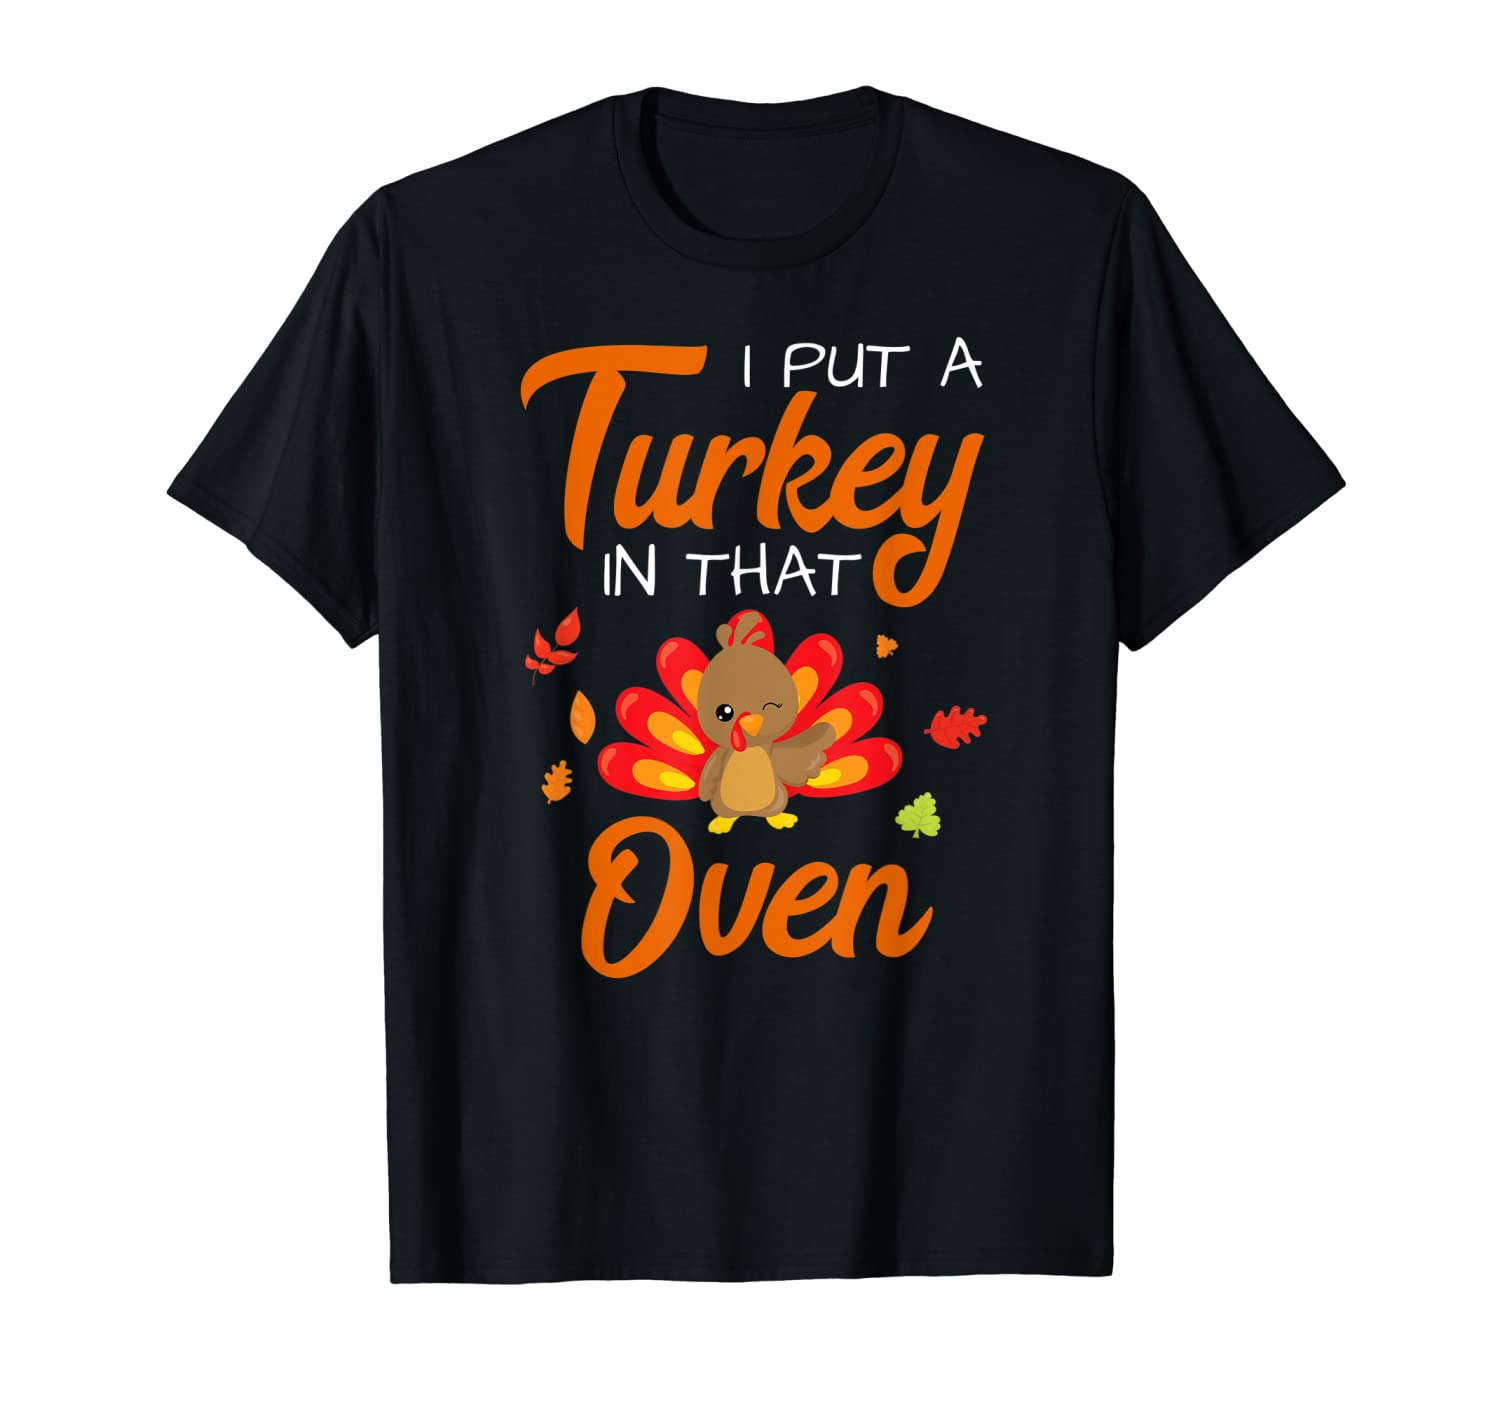 I Put a Turkey in That Oven Thanksgiving Baby Announcement T-Shirt